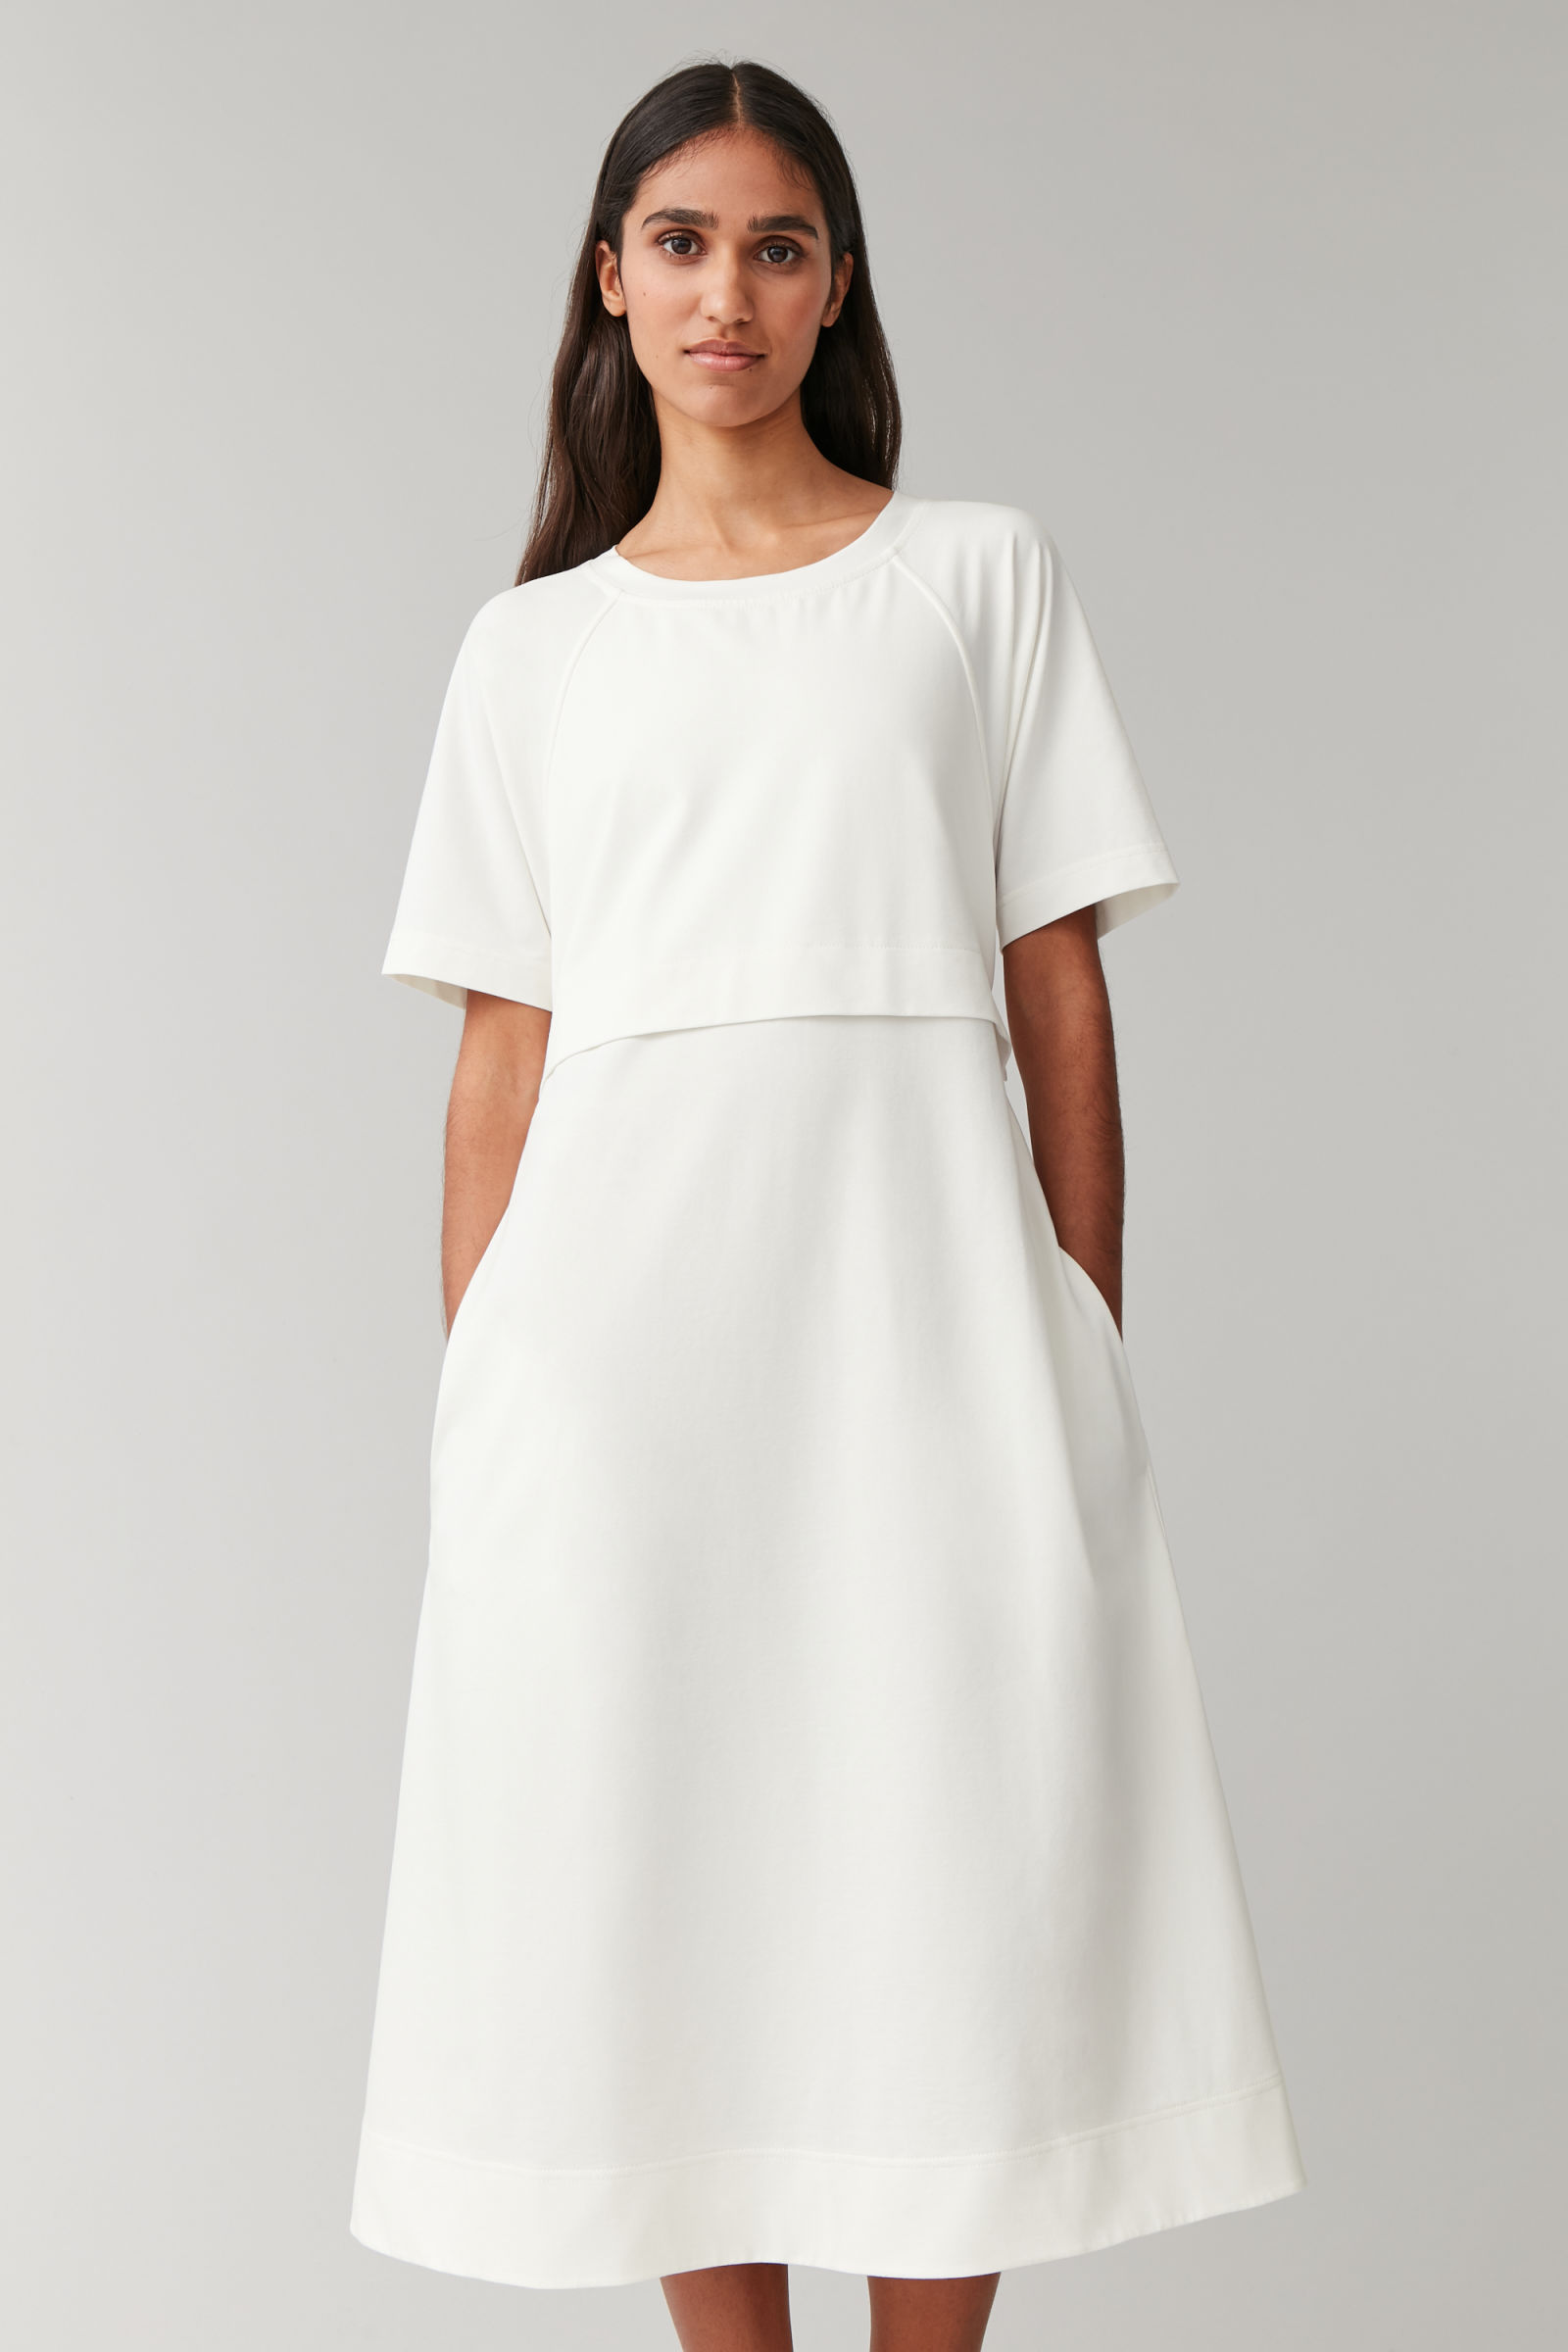 Cos Cotton Dress with Pleated Detail £59